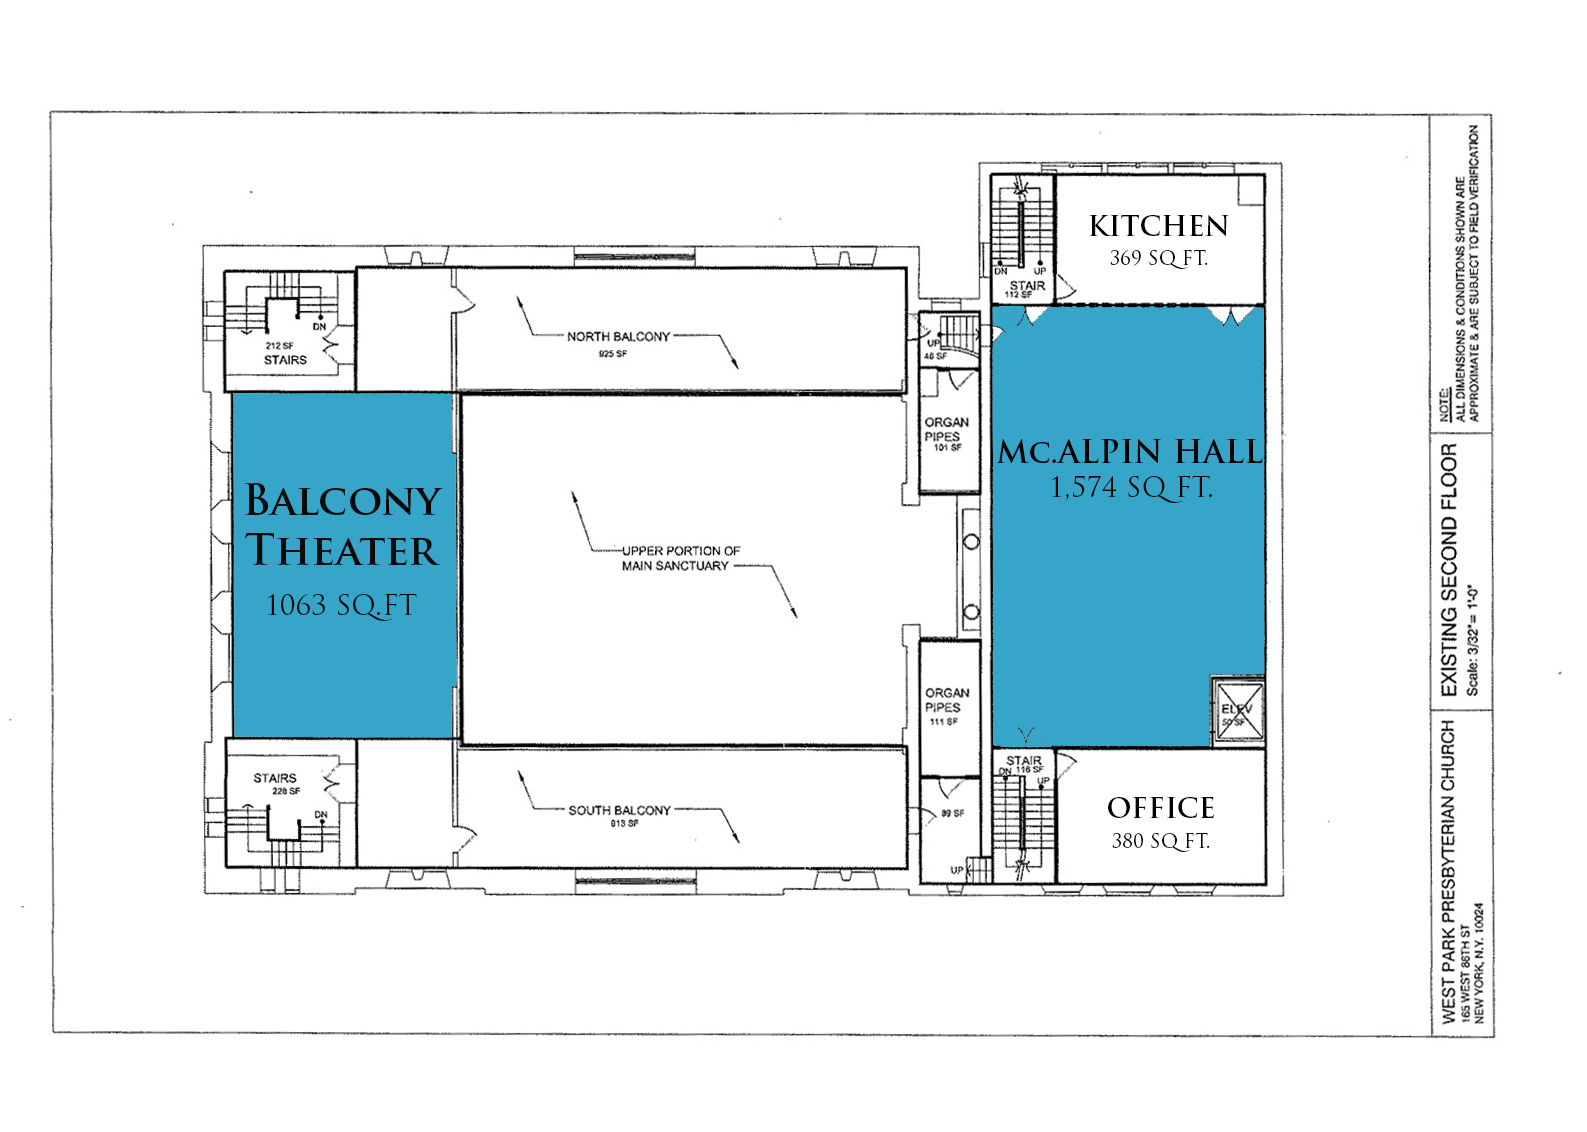 West-park-mc-alpin-hall-floorplans2